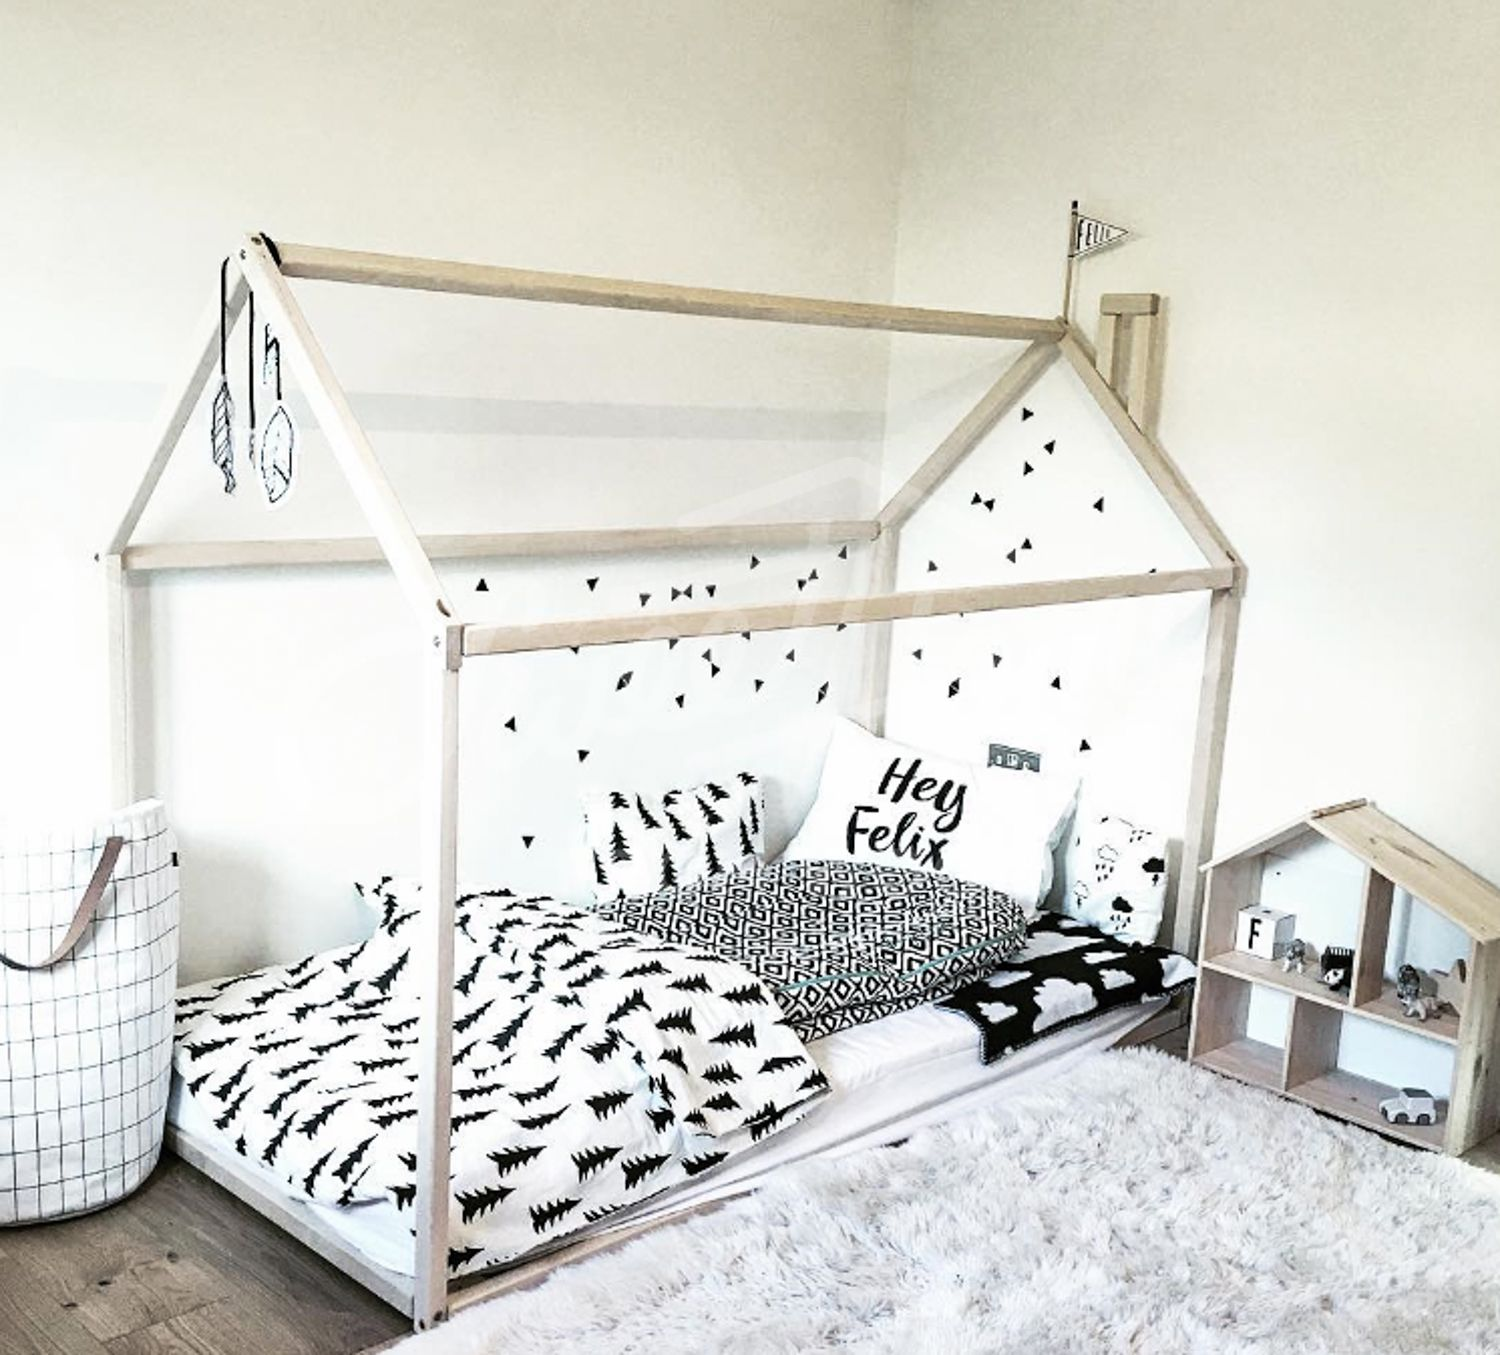 Toddler Bed House Bed Children Bed Wooden House Tent Bed Wood